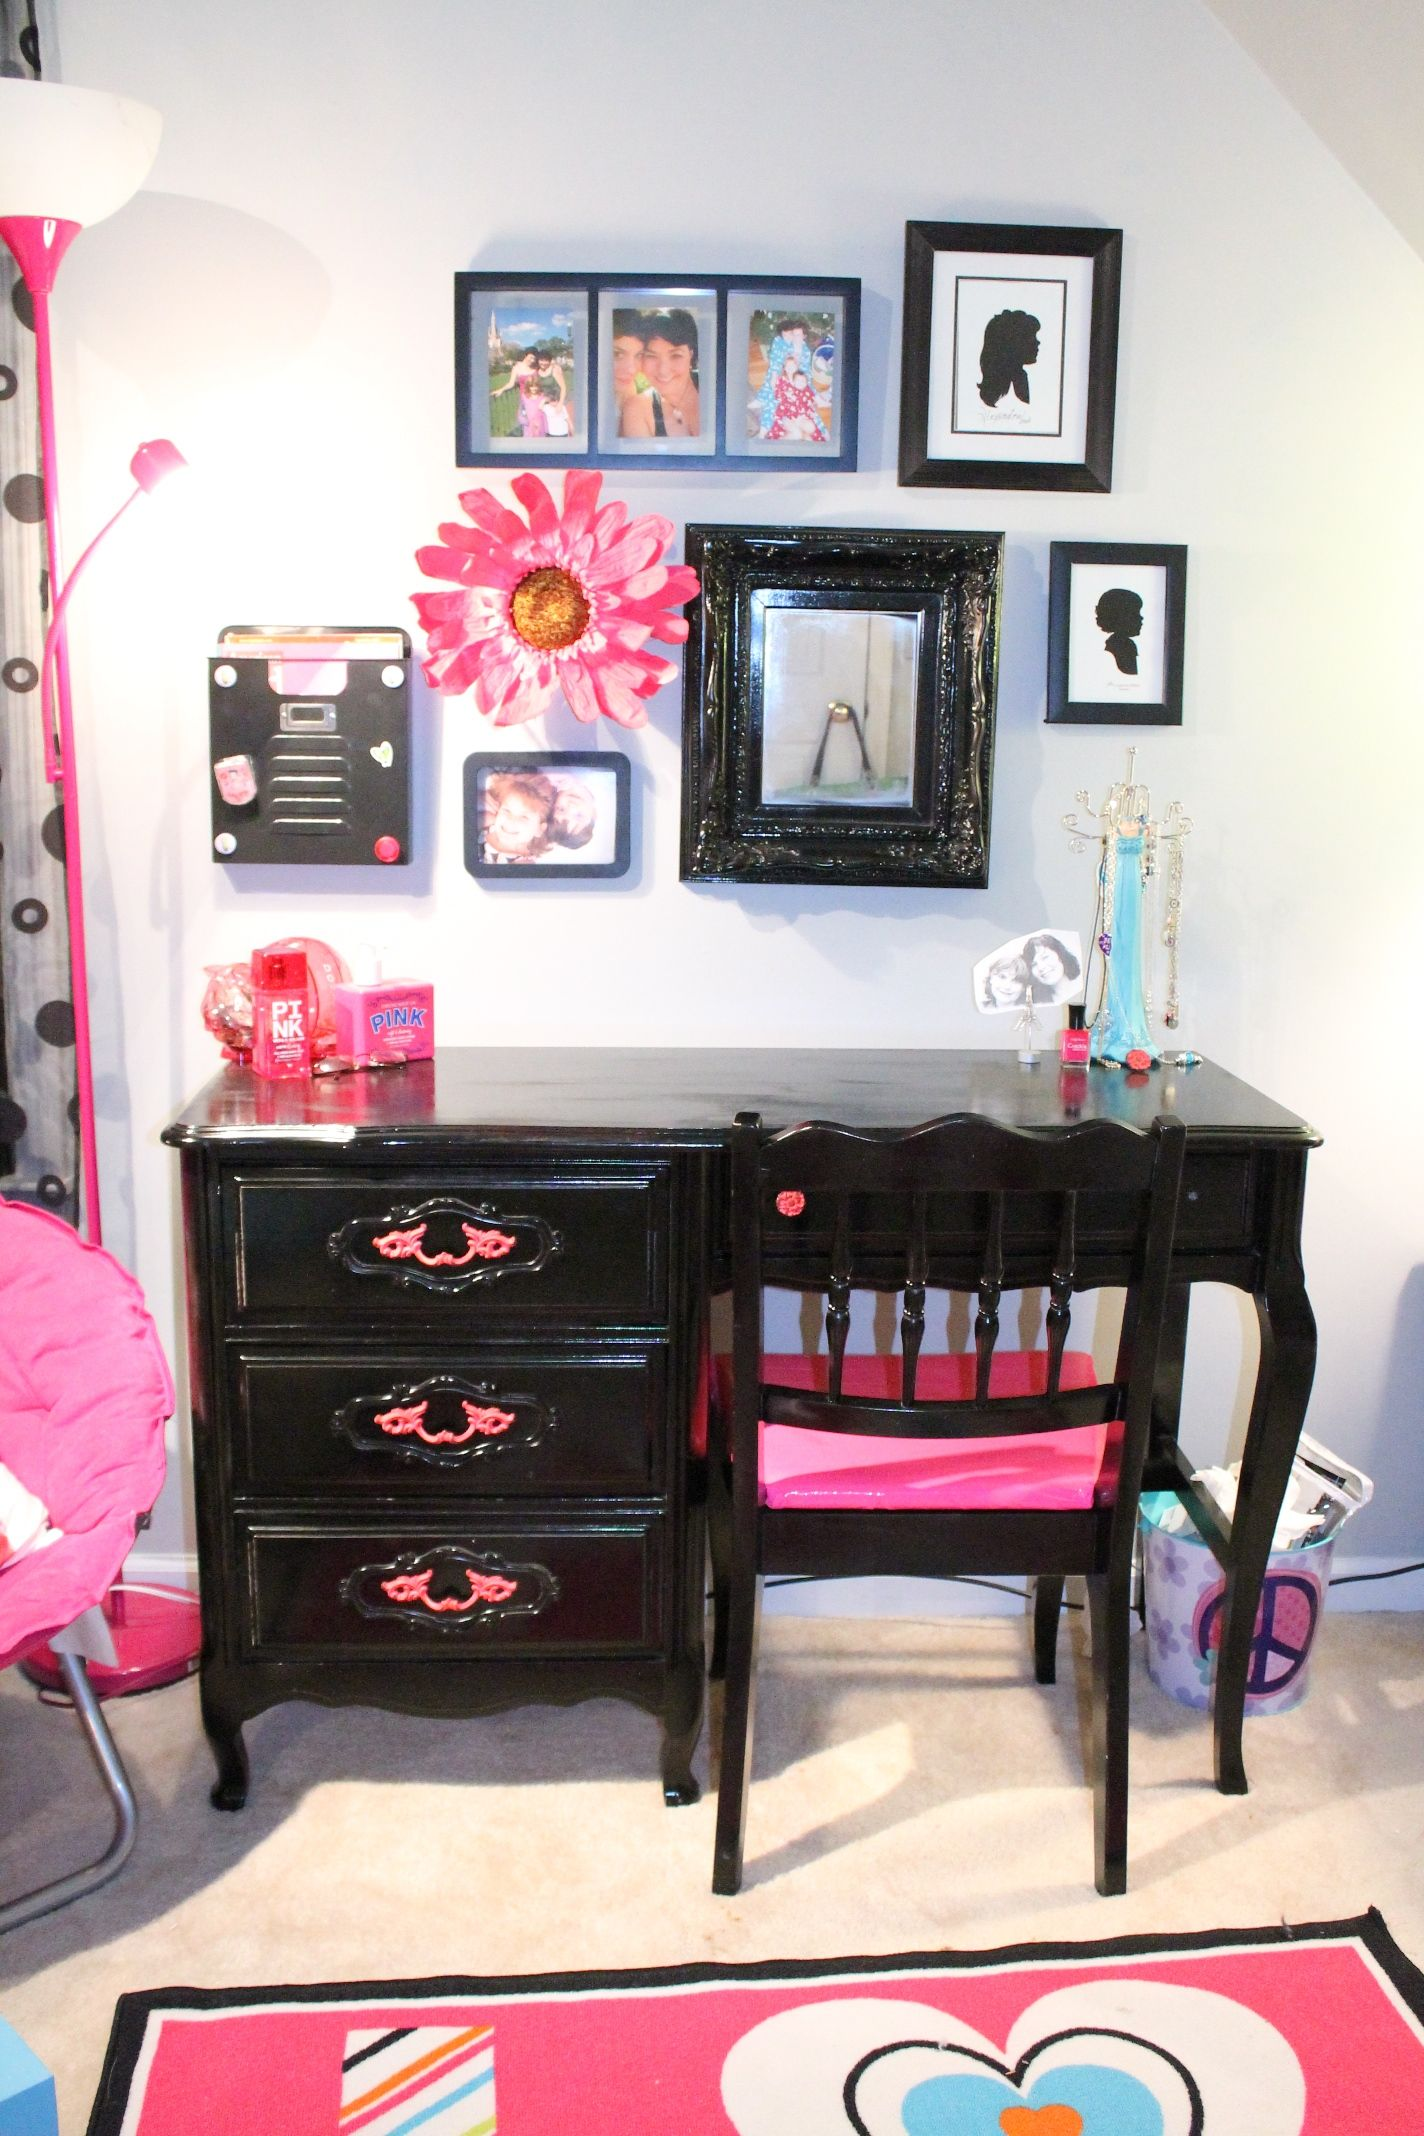 bine bold colors like black and pink with antique pieces like a